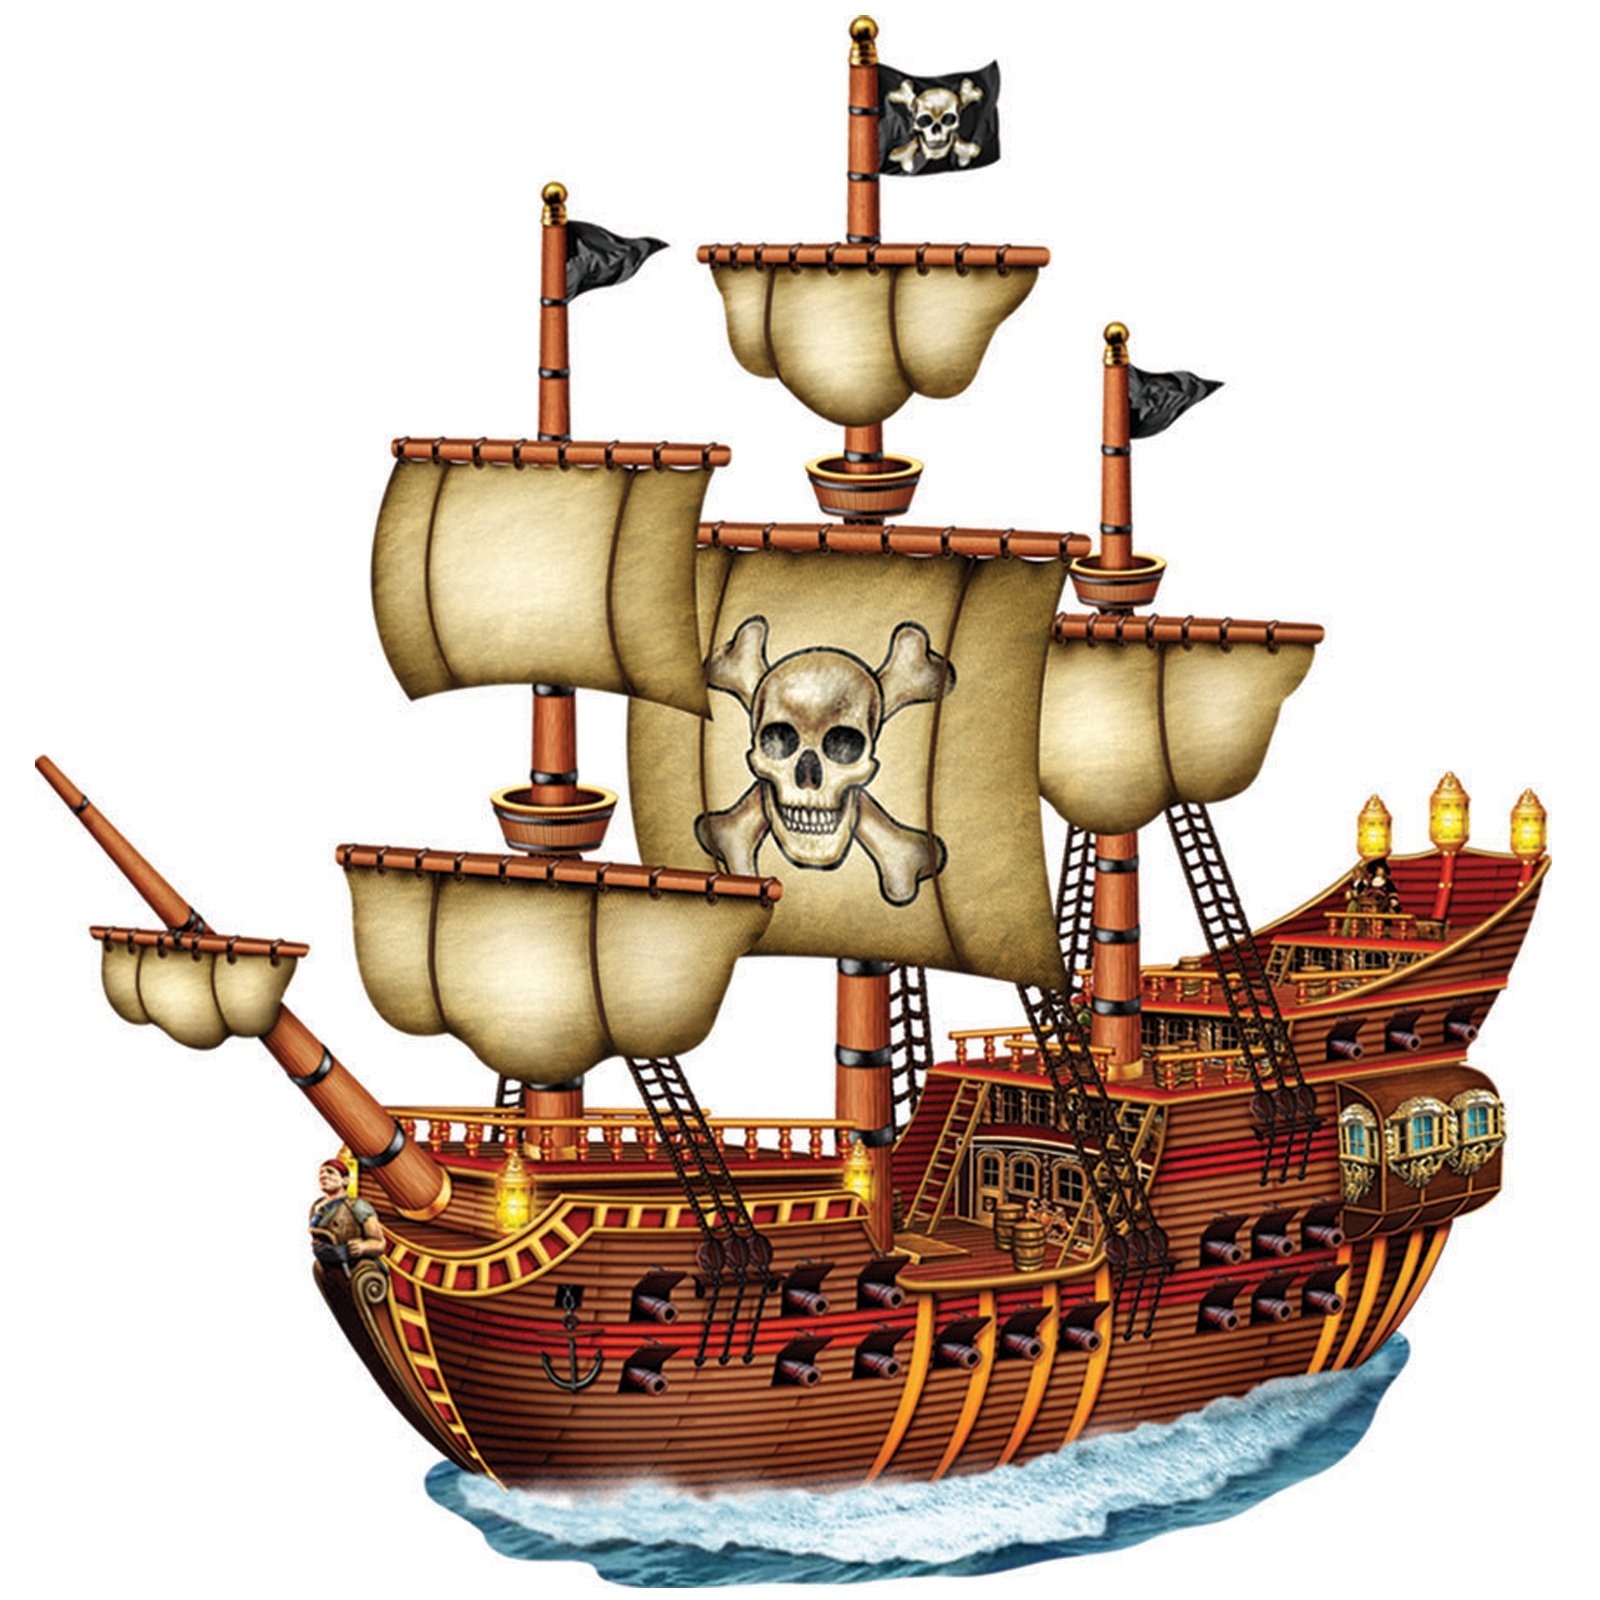 Pirate Ship clipart #2, Download drawings